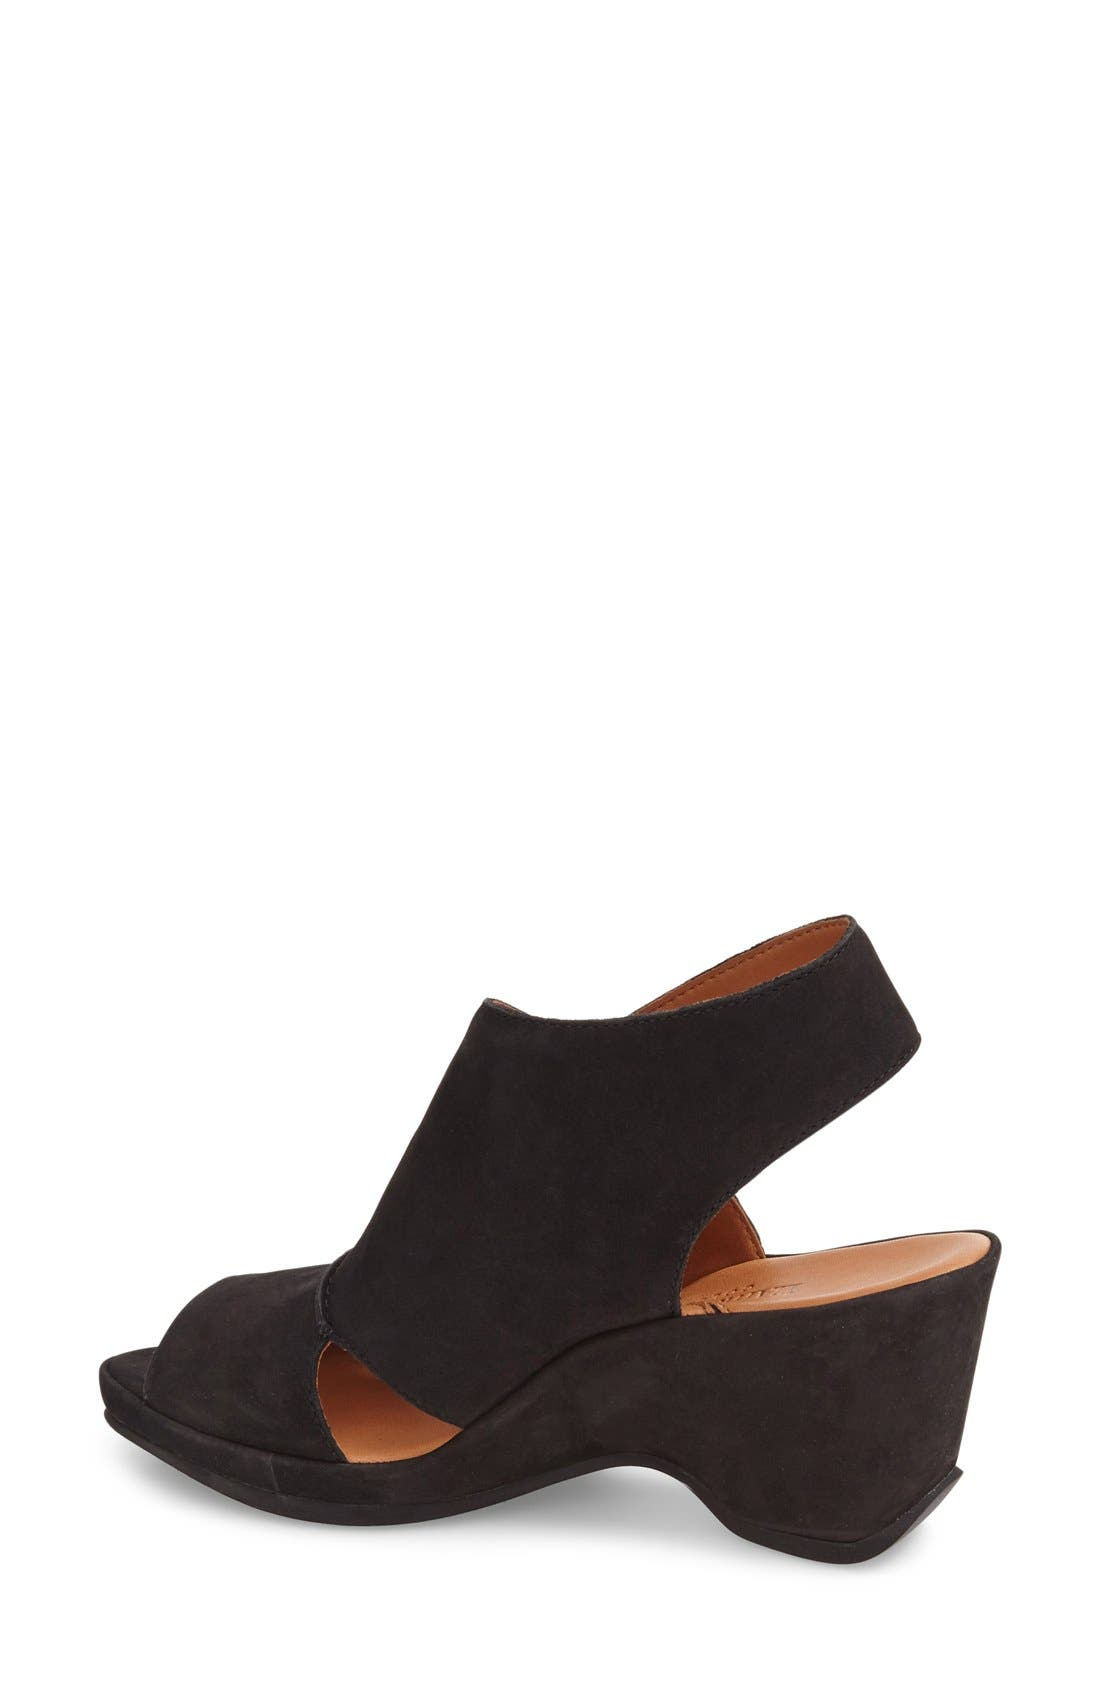 'Oswin' Peep Toe Demi Wedge Sandal,                             Alternate thumbnail 2, color,                             Black Nubuck Leather